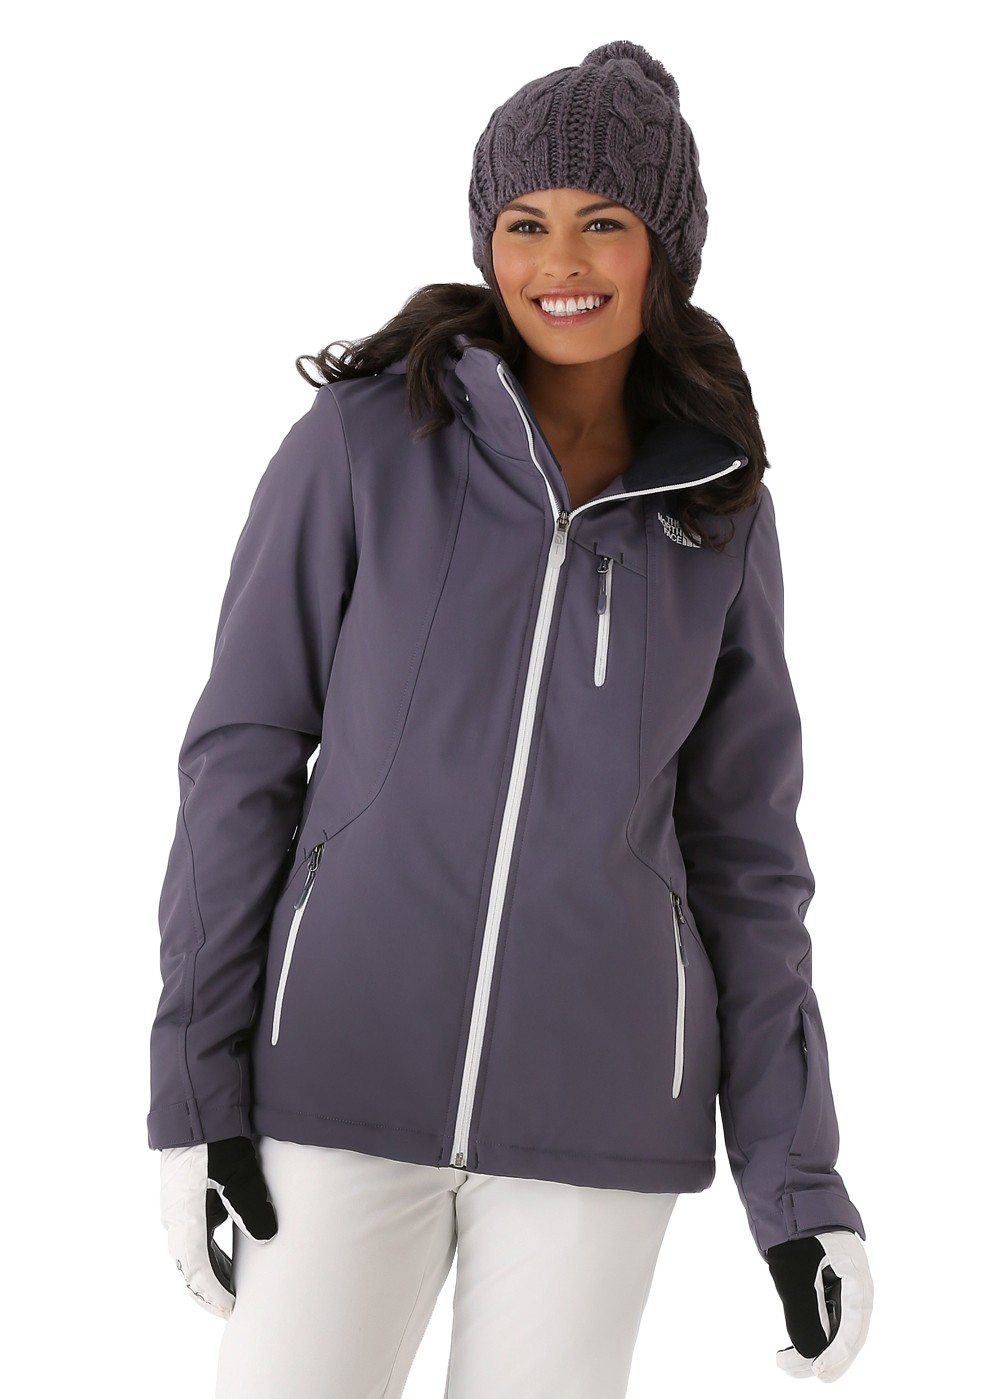 The North Face Women S Komper Jacket In Greystone Blue